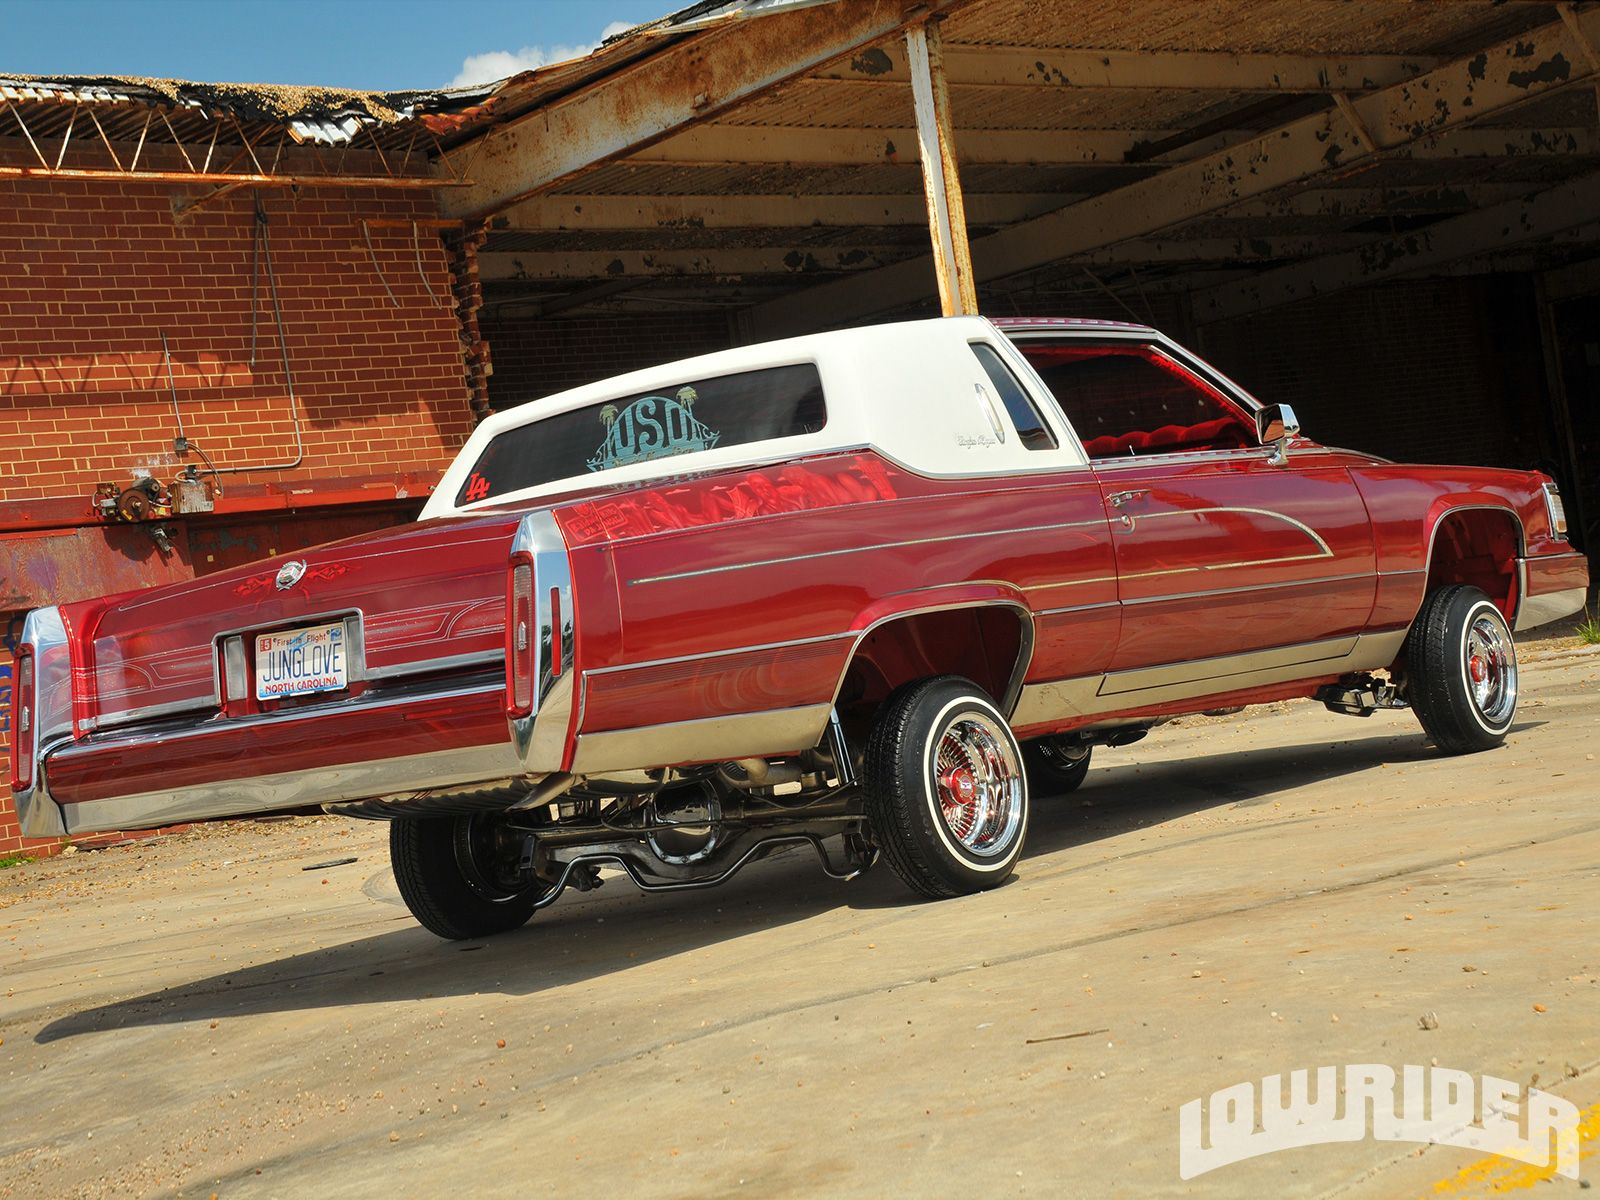 82 Cadillac Fleetwood Brougham coupe - Google Search   Whips ...